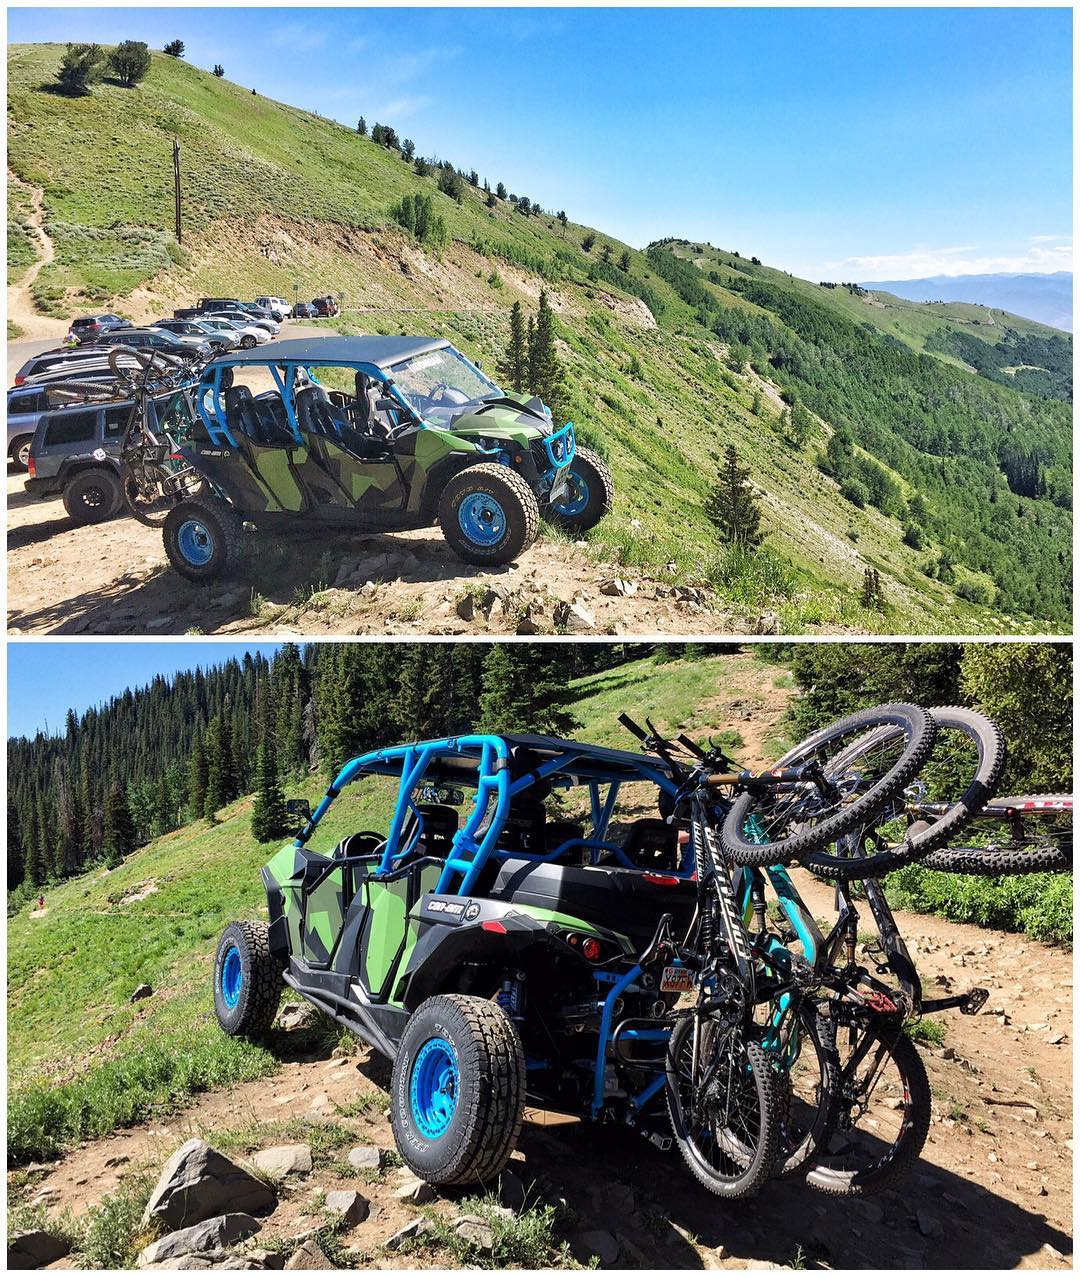 I designed this four seater @CanAmOfficial Maverick X for exactly this: a street-legal fun machine for shuttling mountain bikes up to one of the hundreds of awesome trails here in my hometown of #ParkCity. Today was our first shuttle run with this...